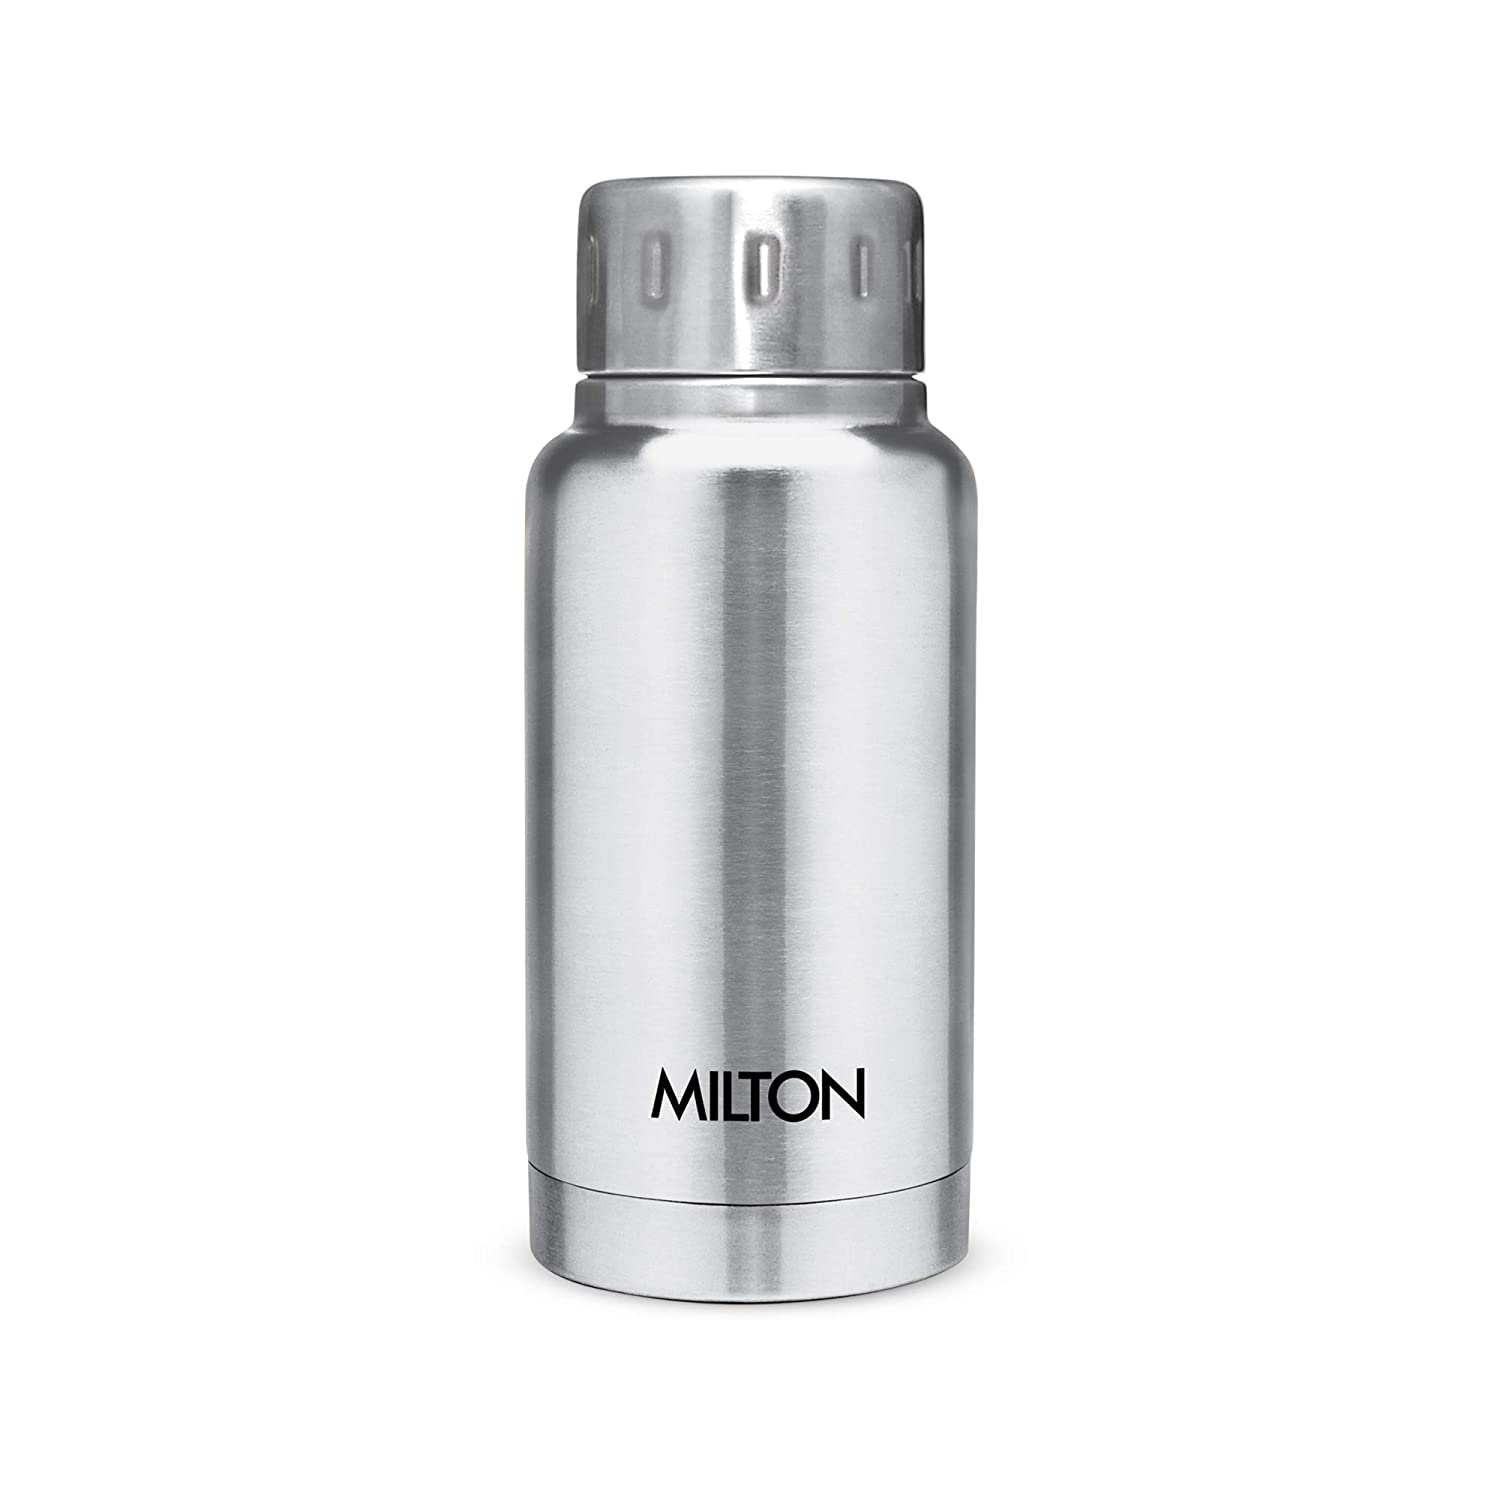 Milton Elfin Thermosteel Flask Flask, 160Ml, Silver